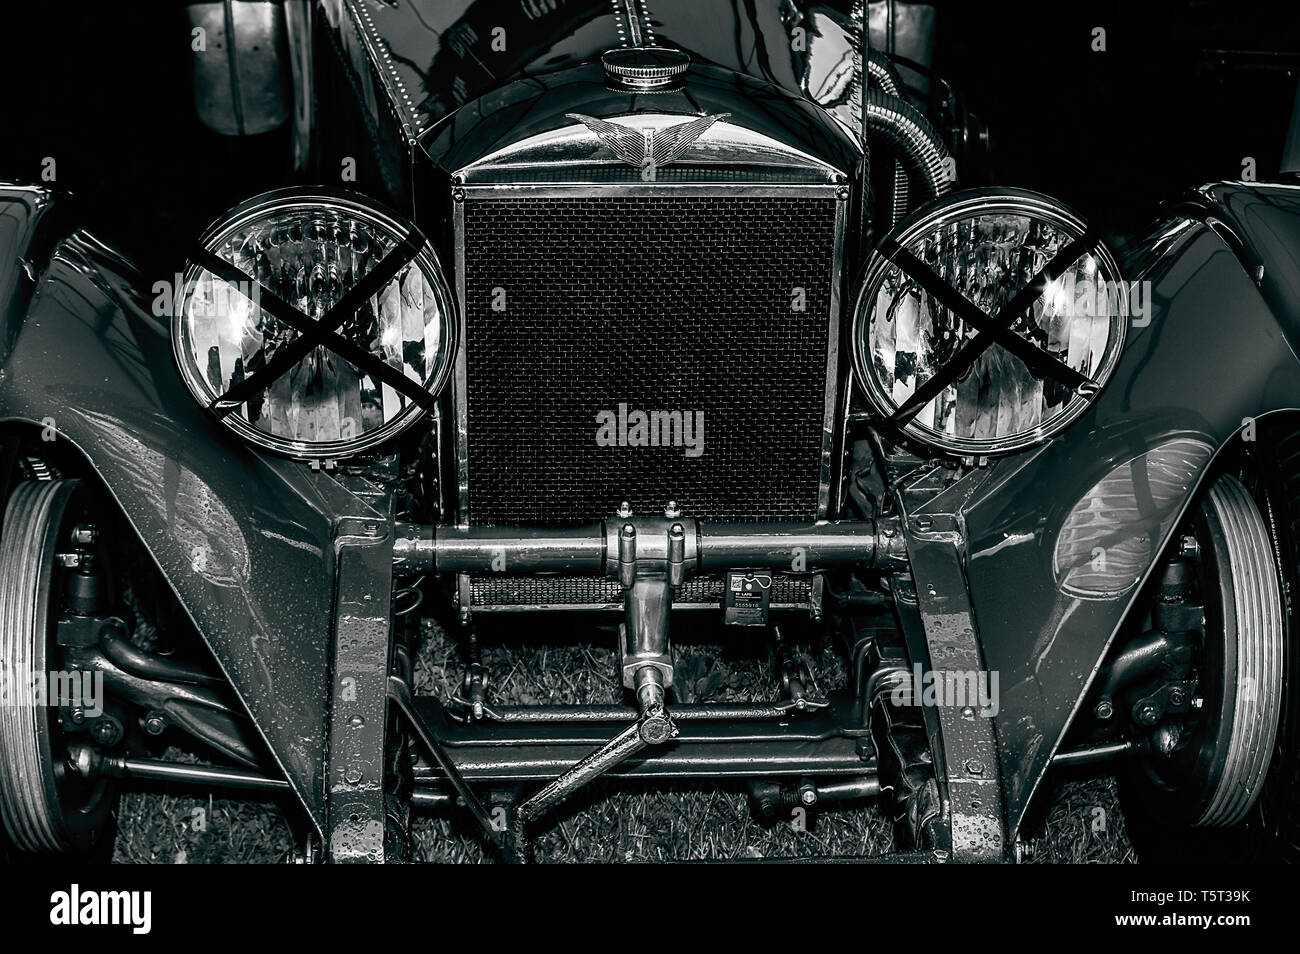 A 1930's car on display at Goodwood Revival 2017 - Stock Image